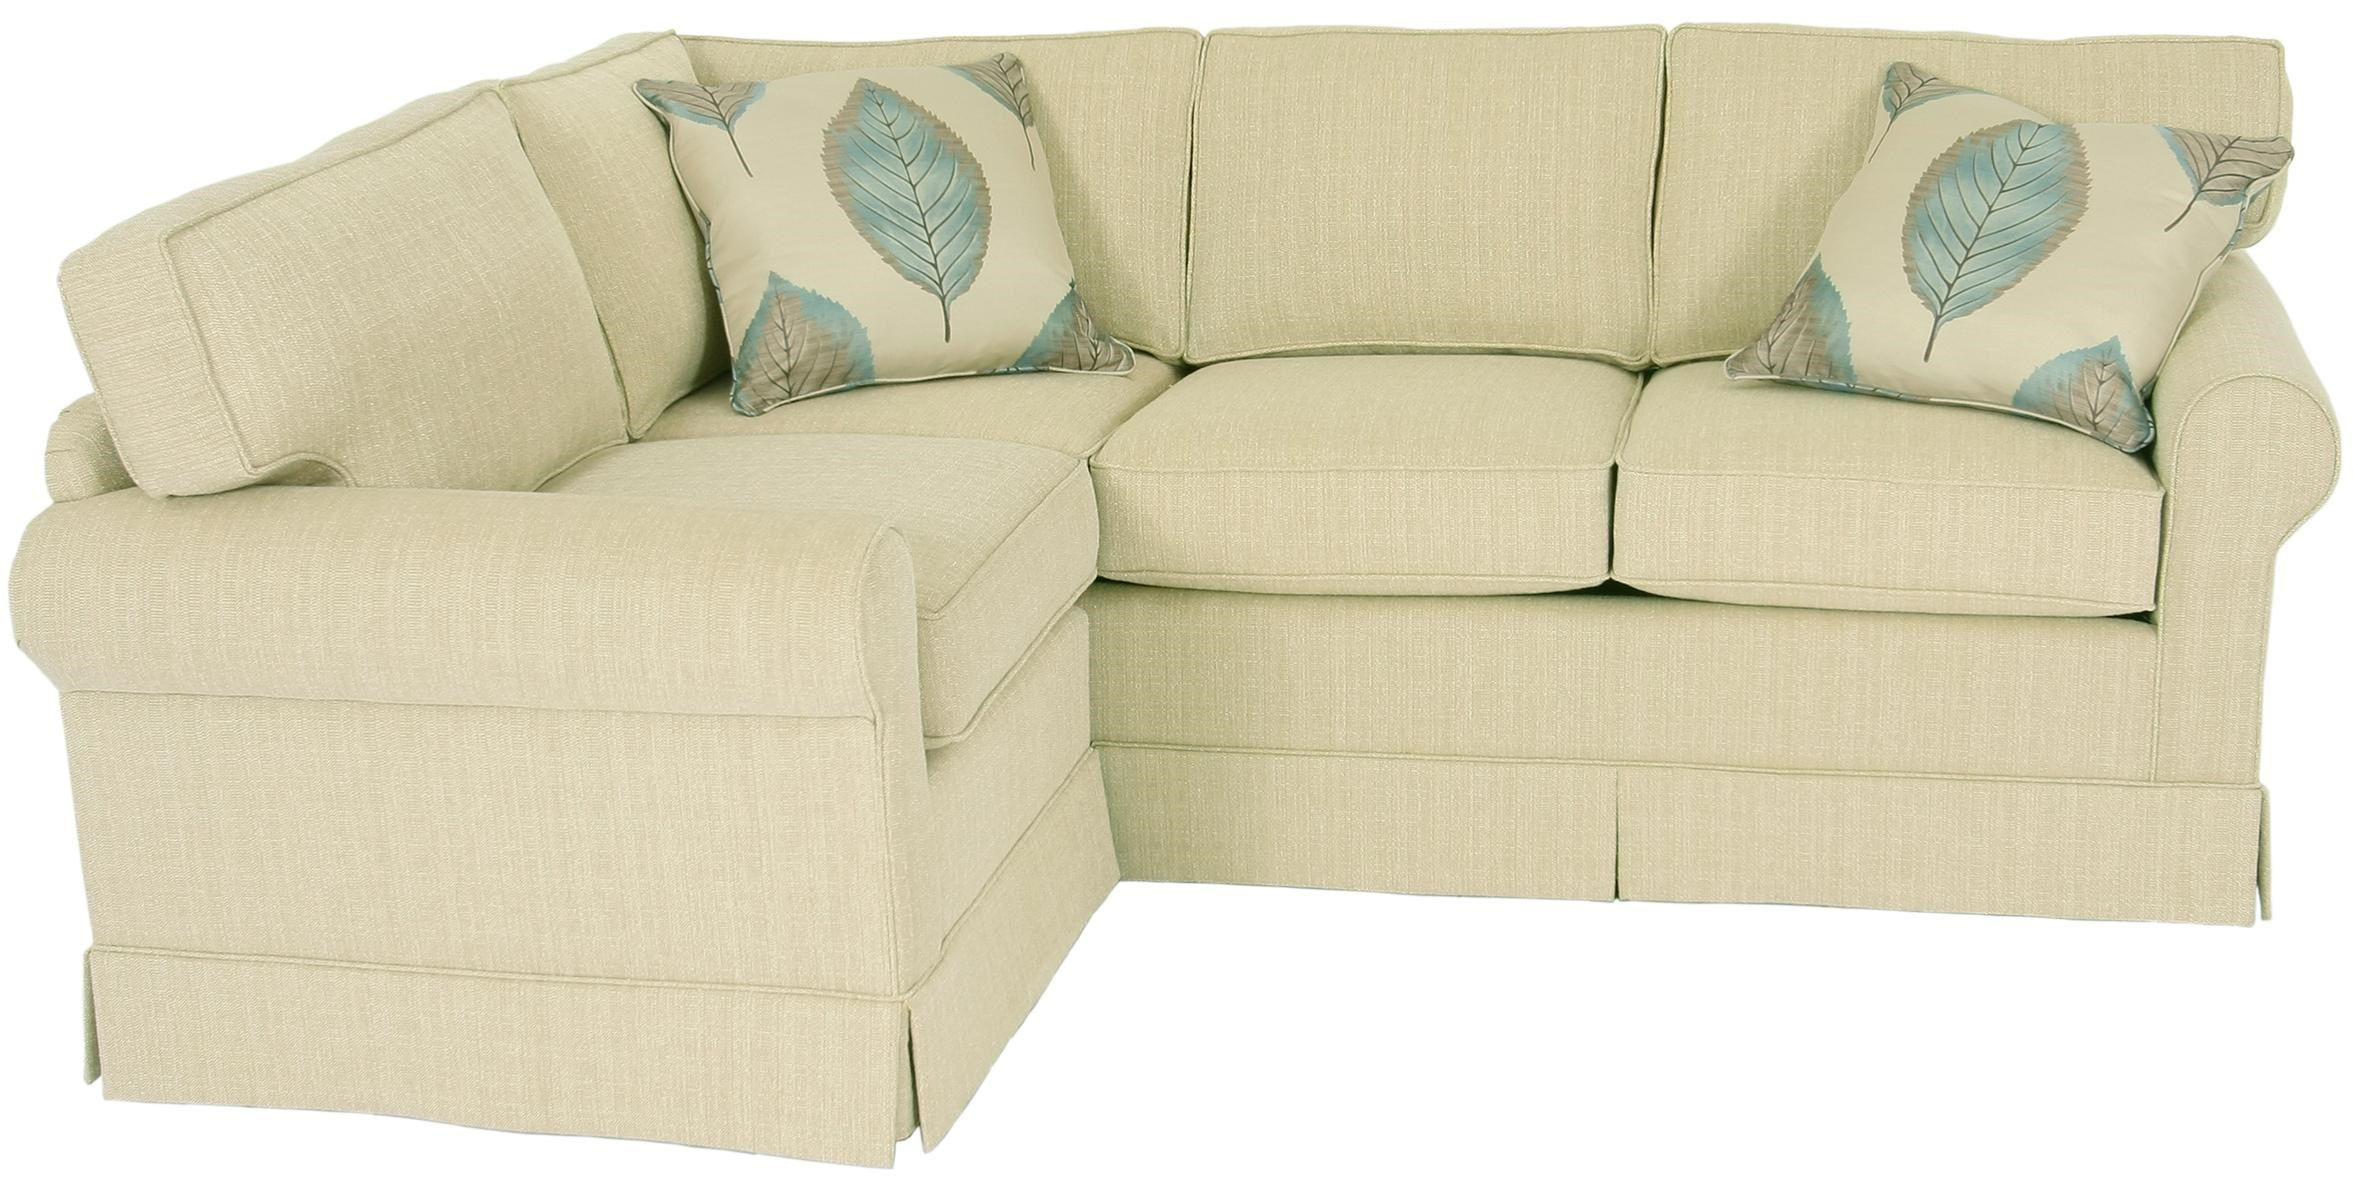 Copley Square Sectional Sofa By Norwalk